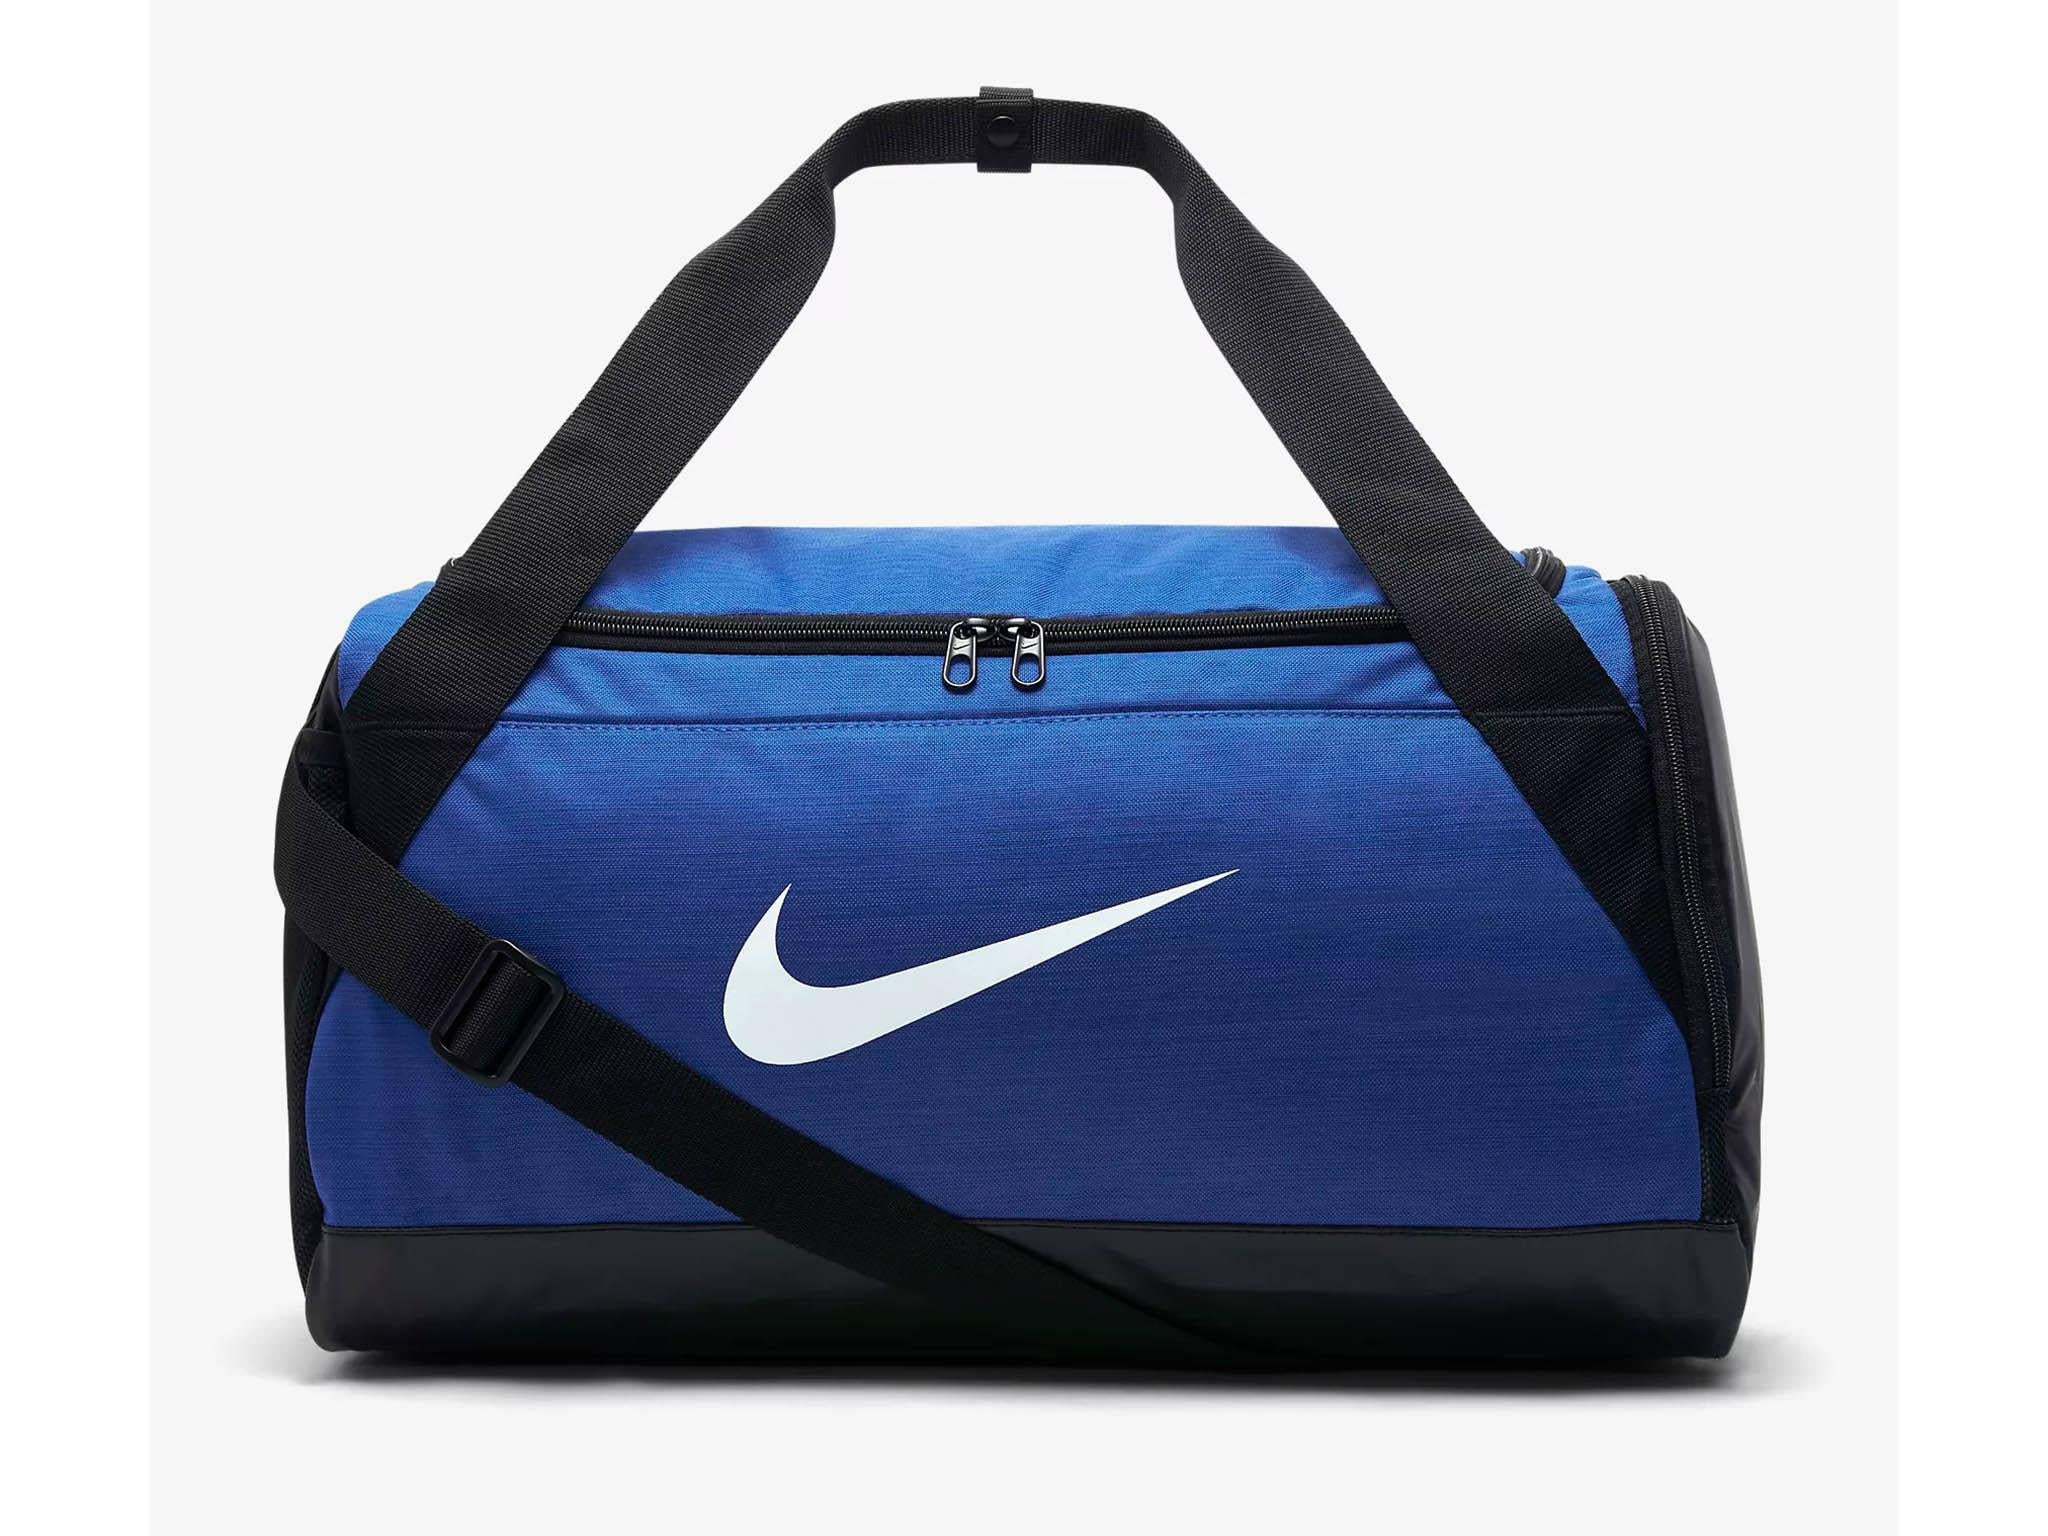 dcd9b86a753c 6 best men's gym bags | The Independent